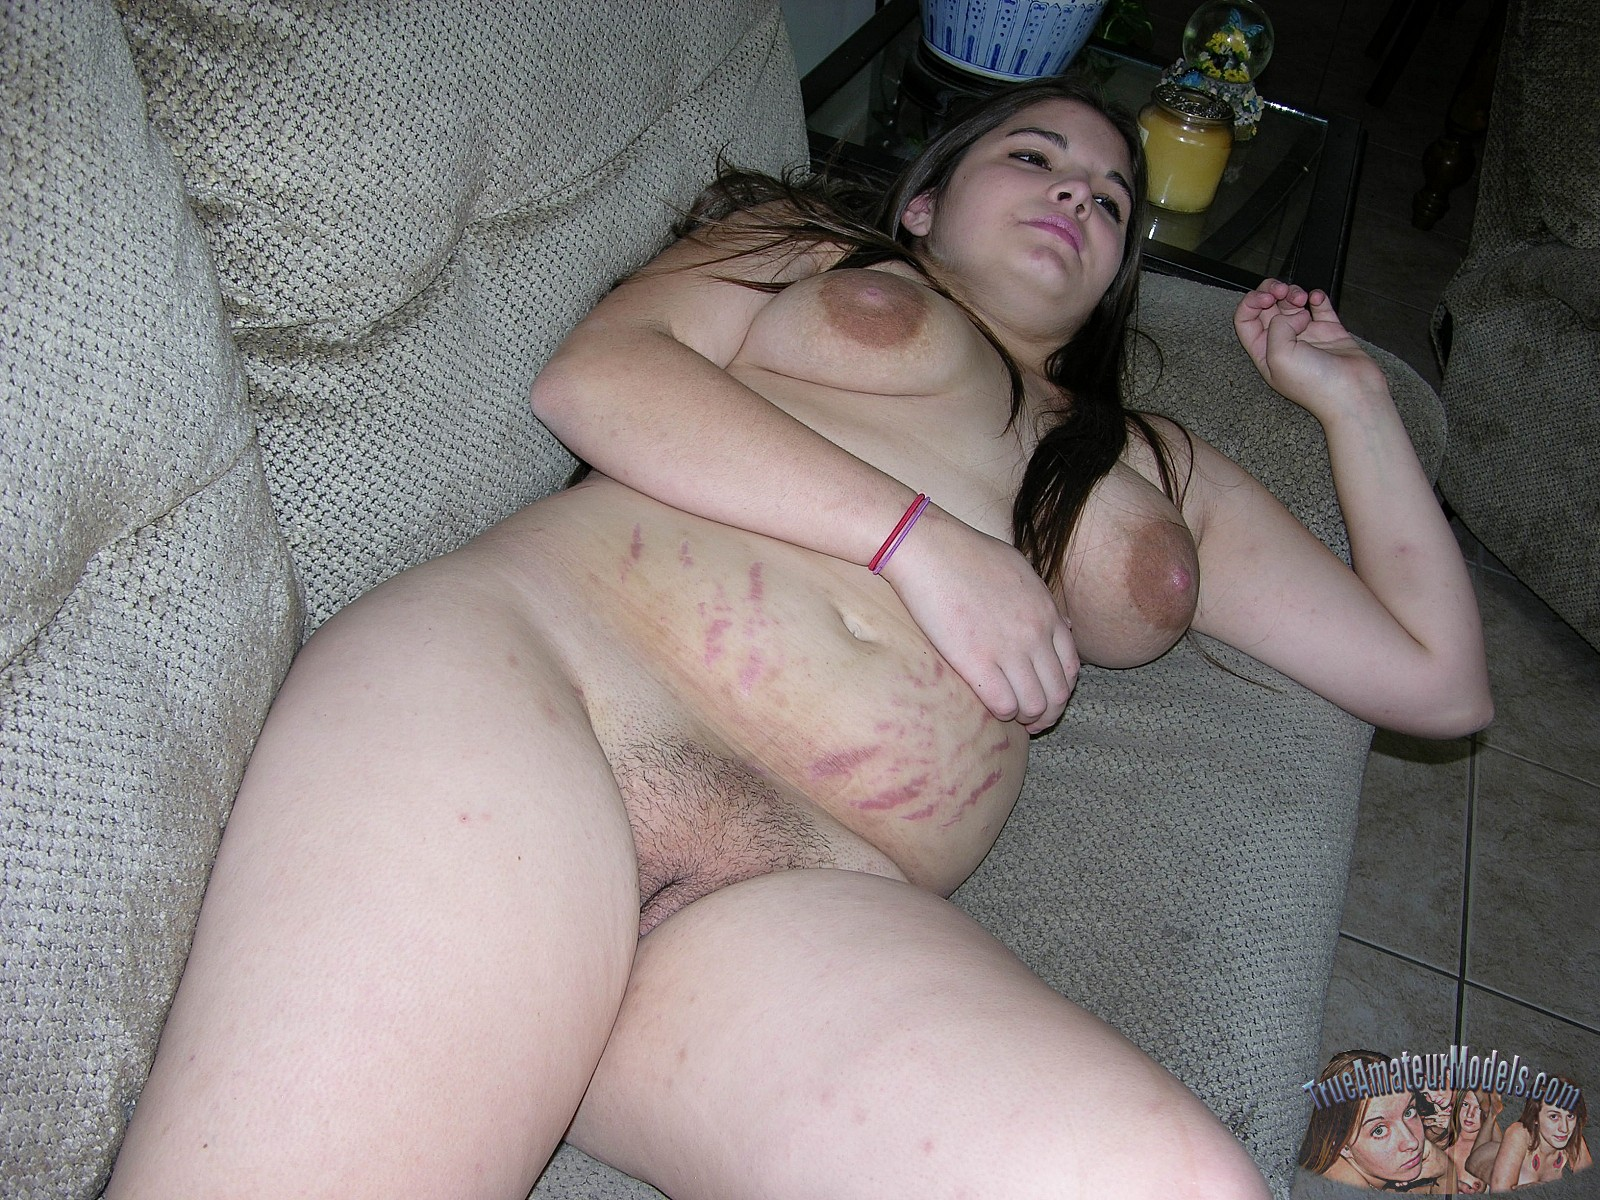 Fat sexy girls nude chubby